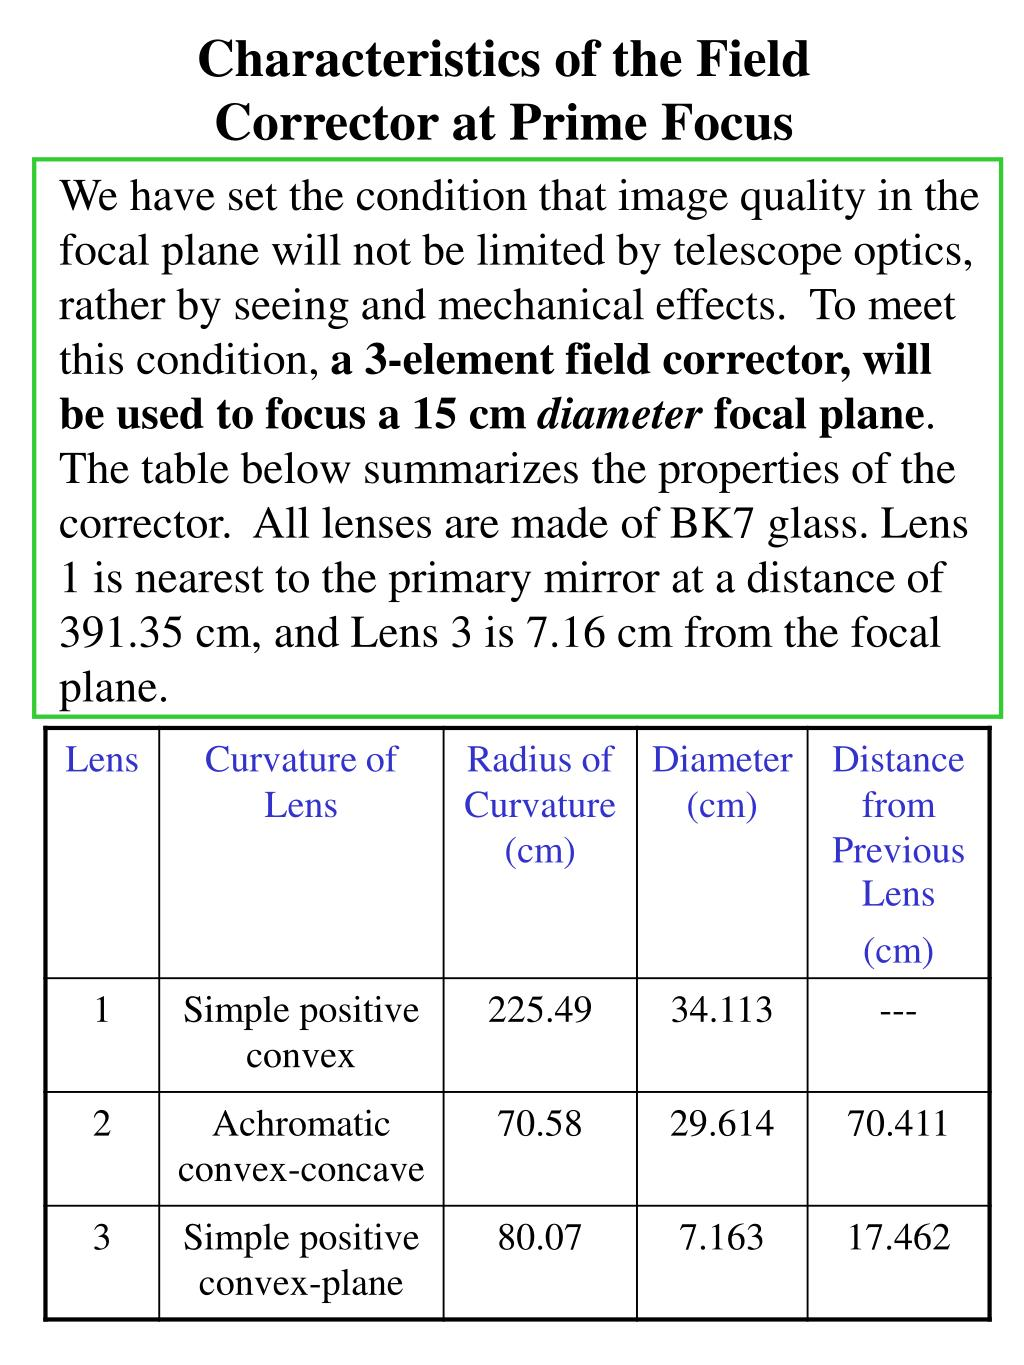 Characteristics of the Field Corrector at Prime Focus